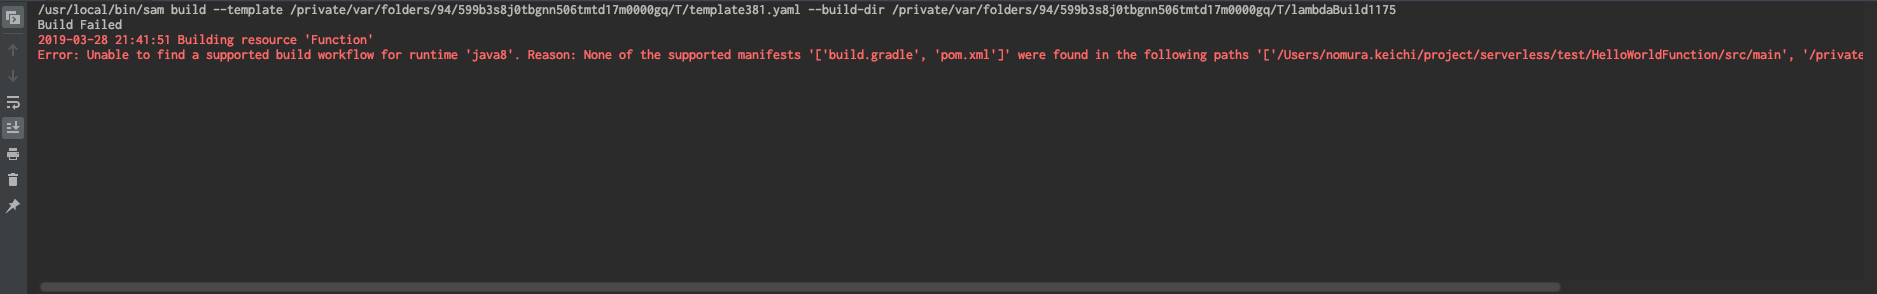 Lambda function in Gradle Project failed to Running locally · Issue